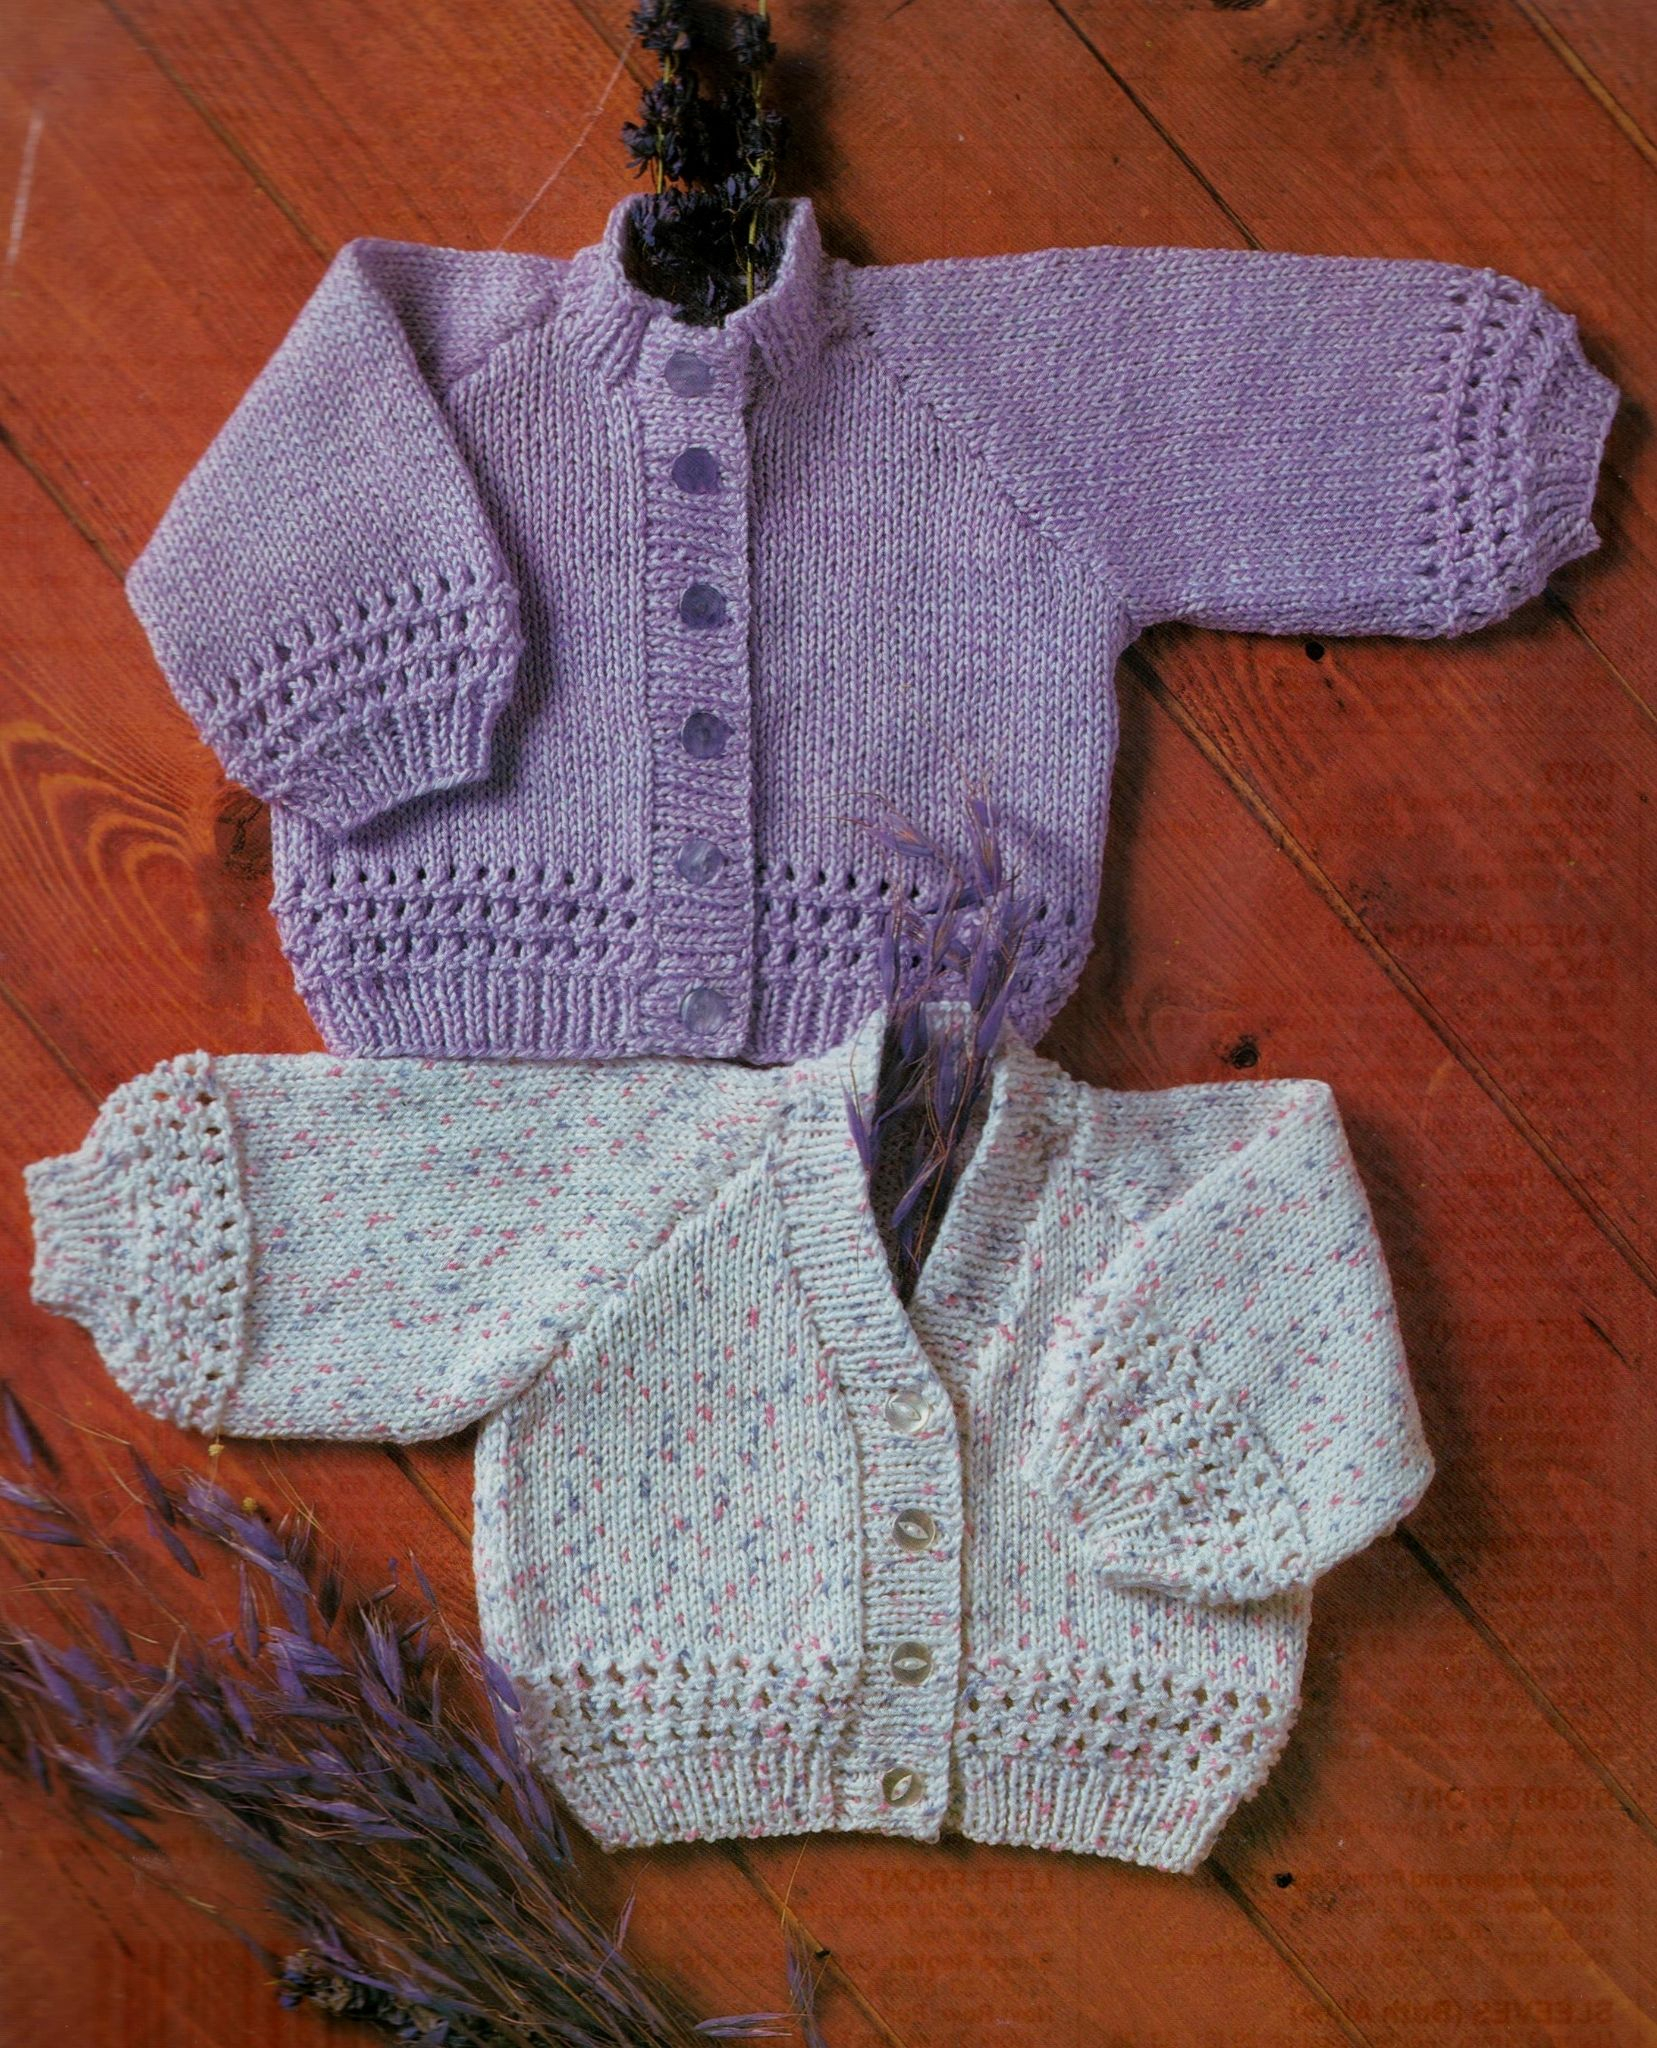 Baby Coat Knitting Pattern Pdf Digital Download Ba Knitting Pattern Ba Cardigan With 2 Necklines In Double Knitting Chest 14 To 22